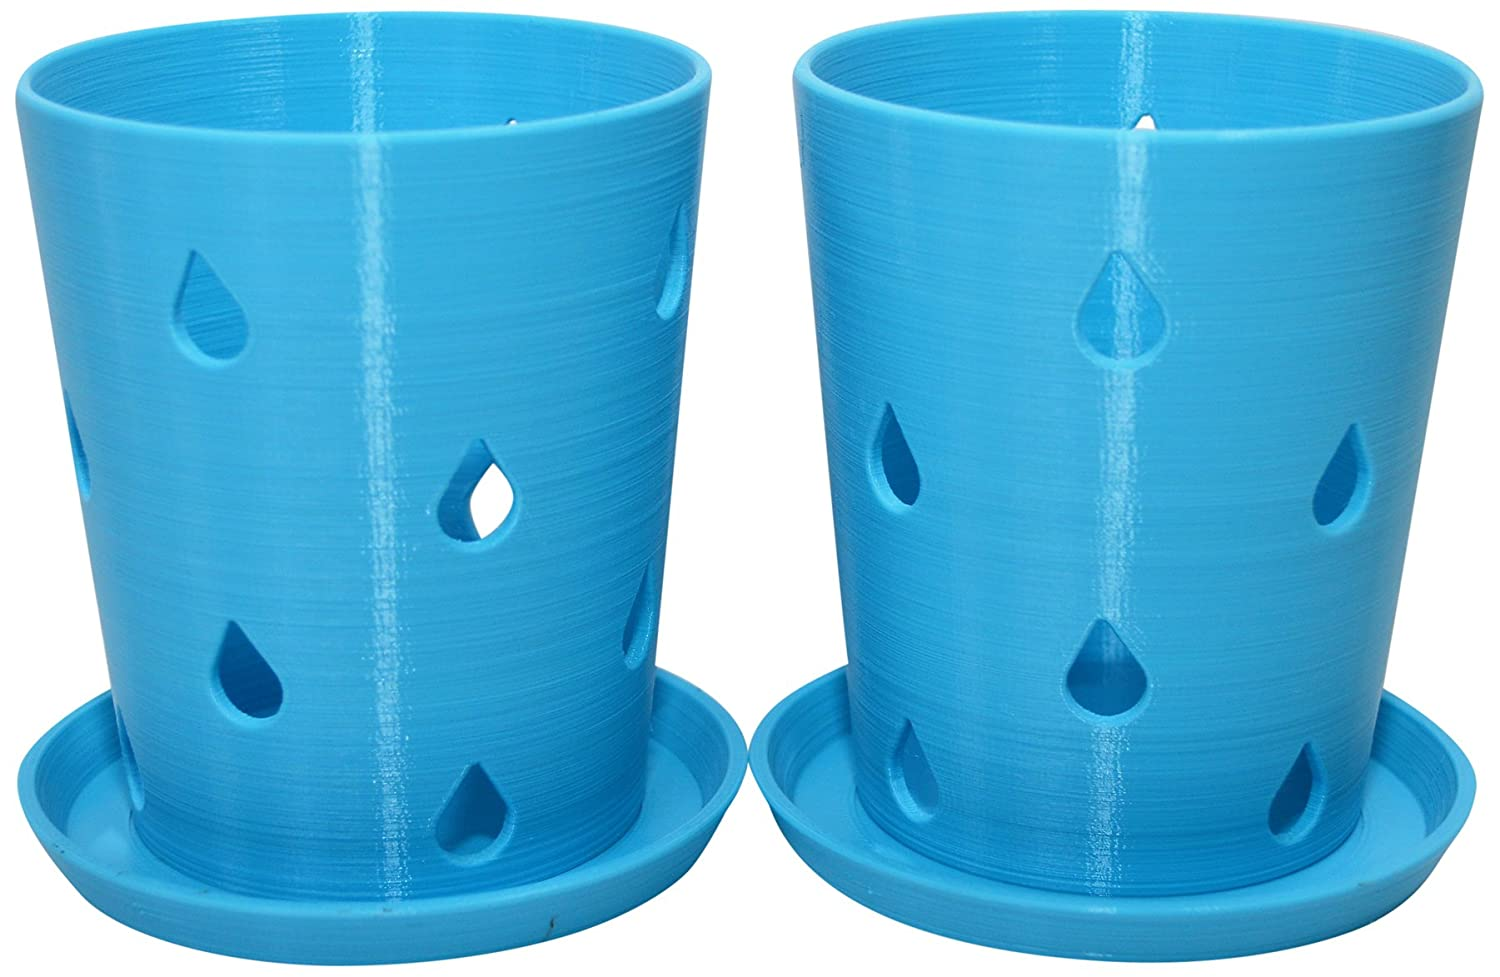 HD PRINTABLES Orchid Pots with Trays, Turquoise